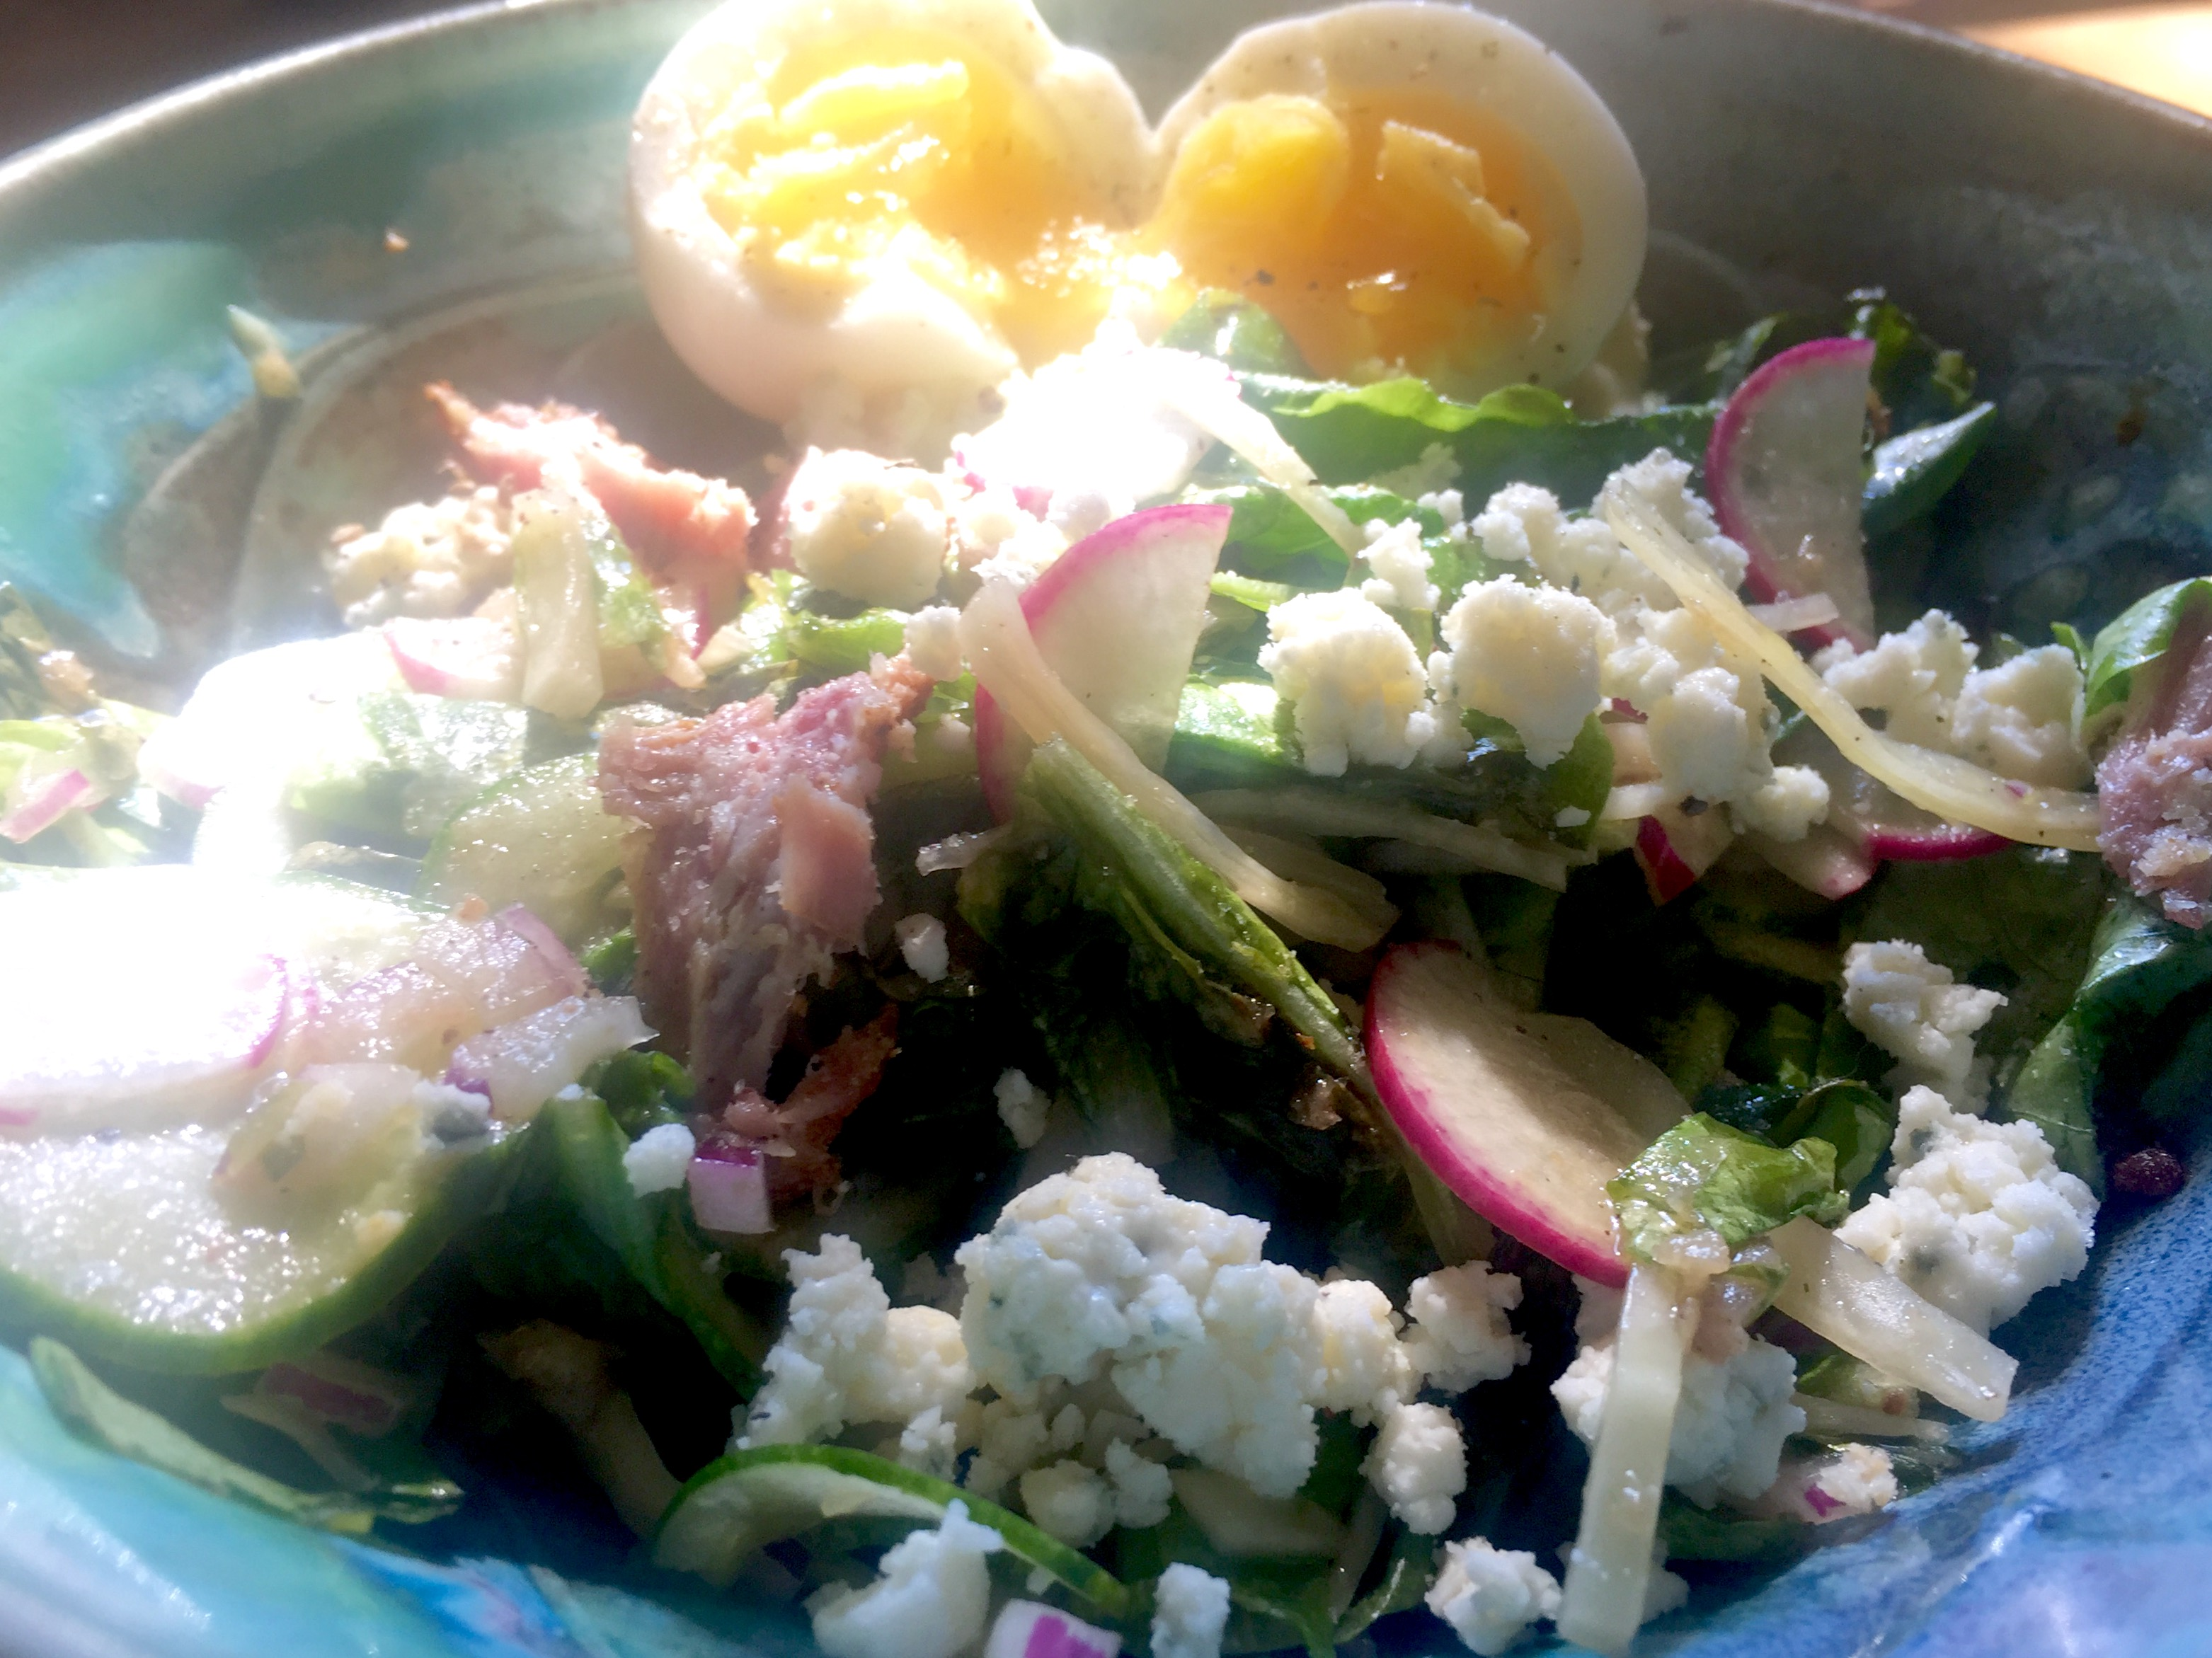 Leftover Salad with Soft Egg